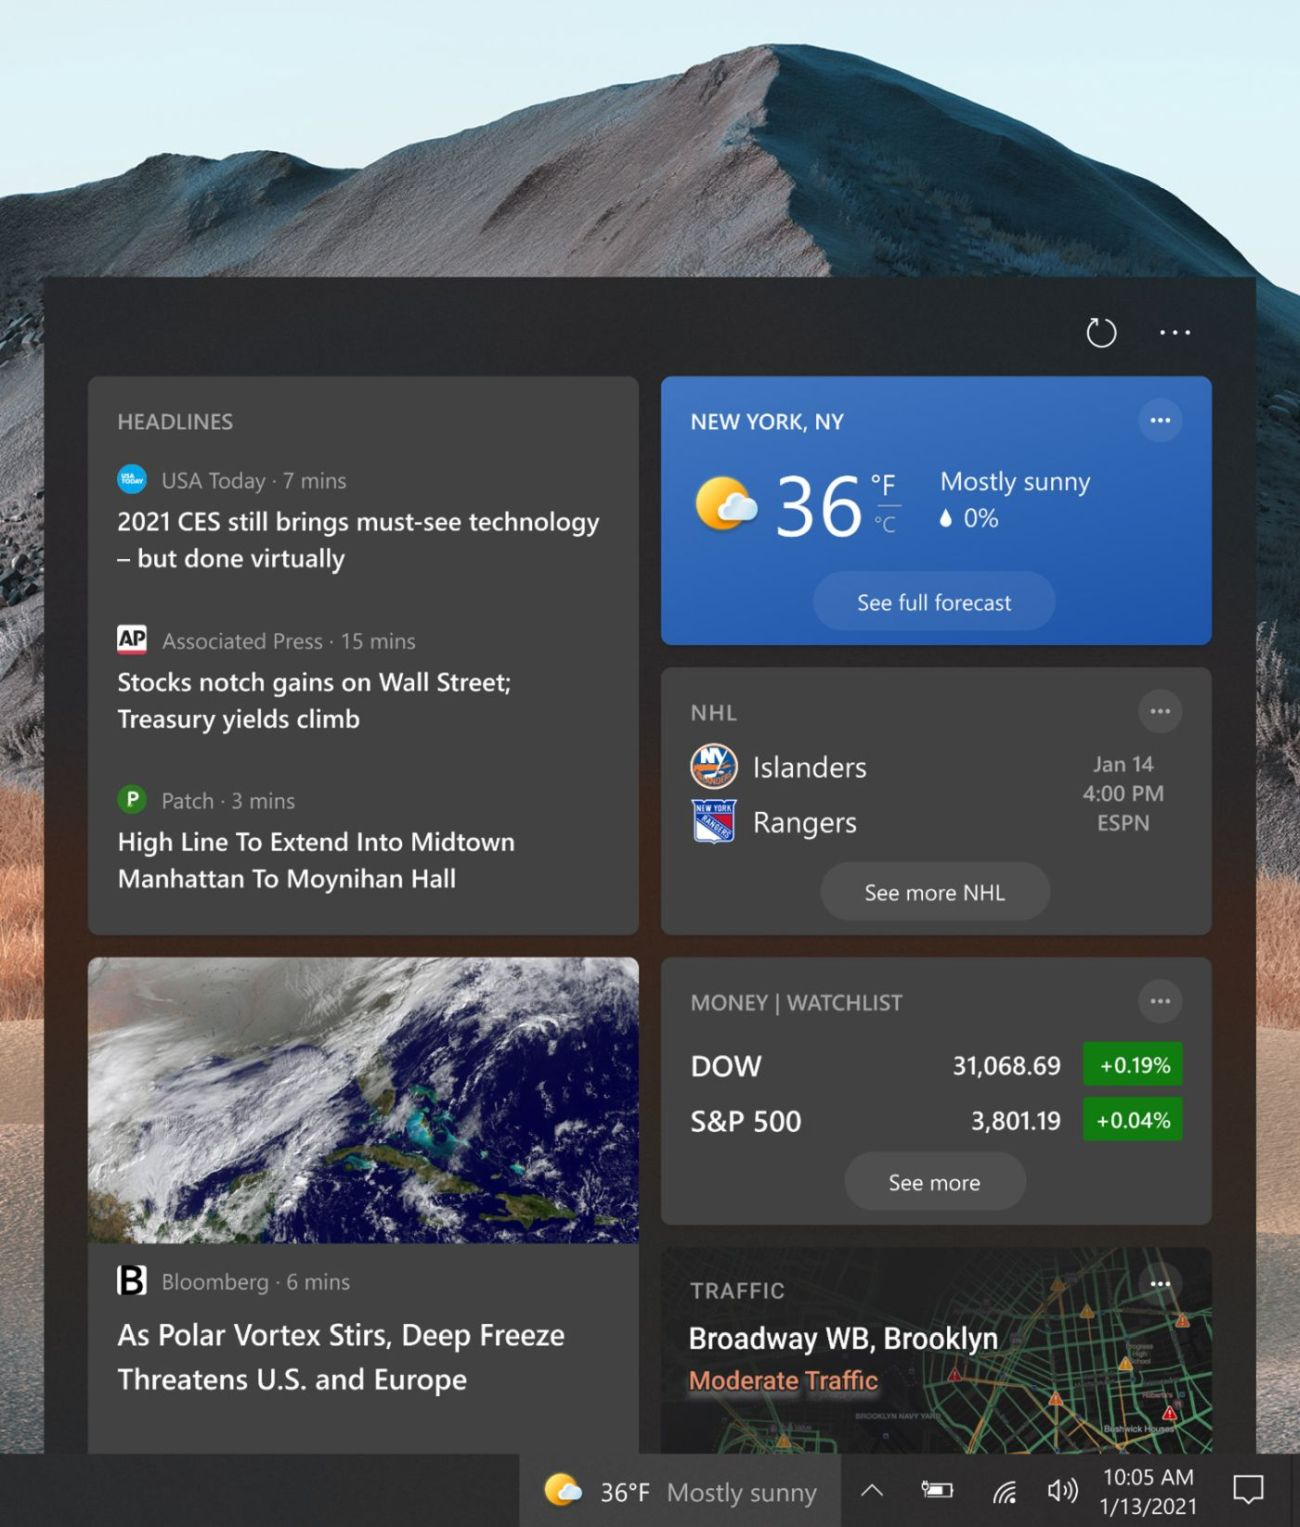 News and Interests in Windows 10